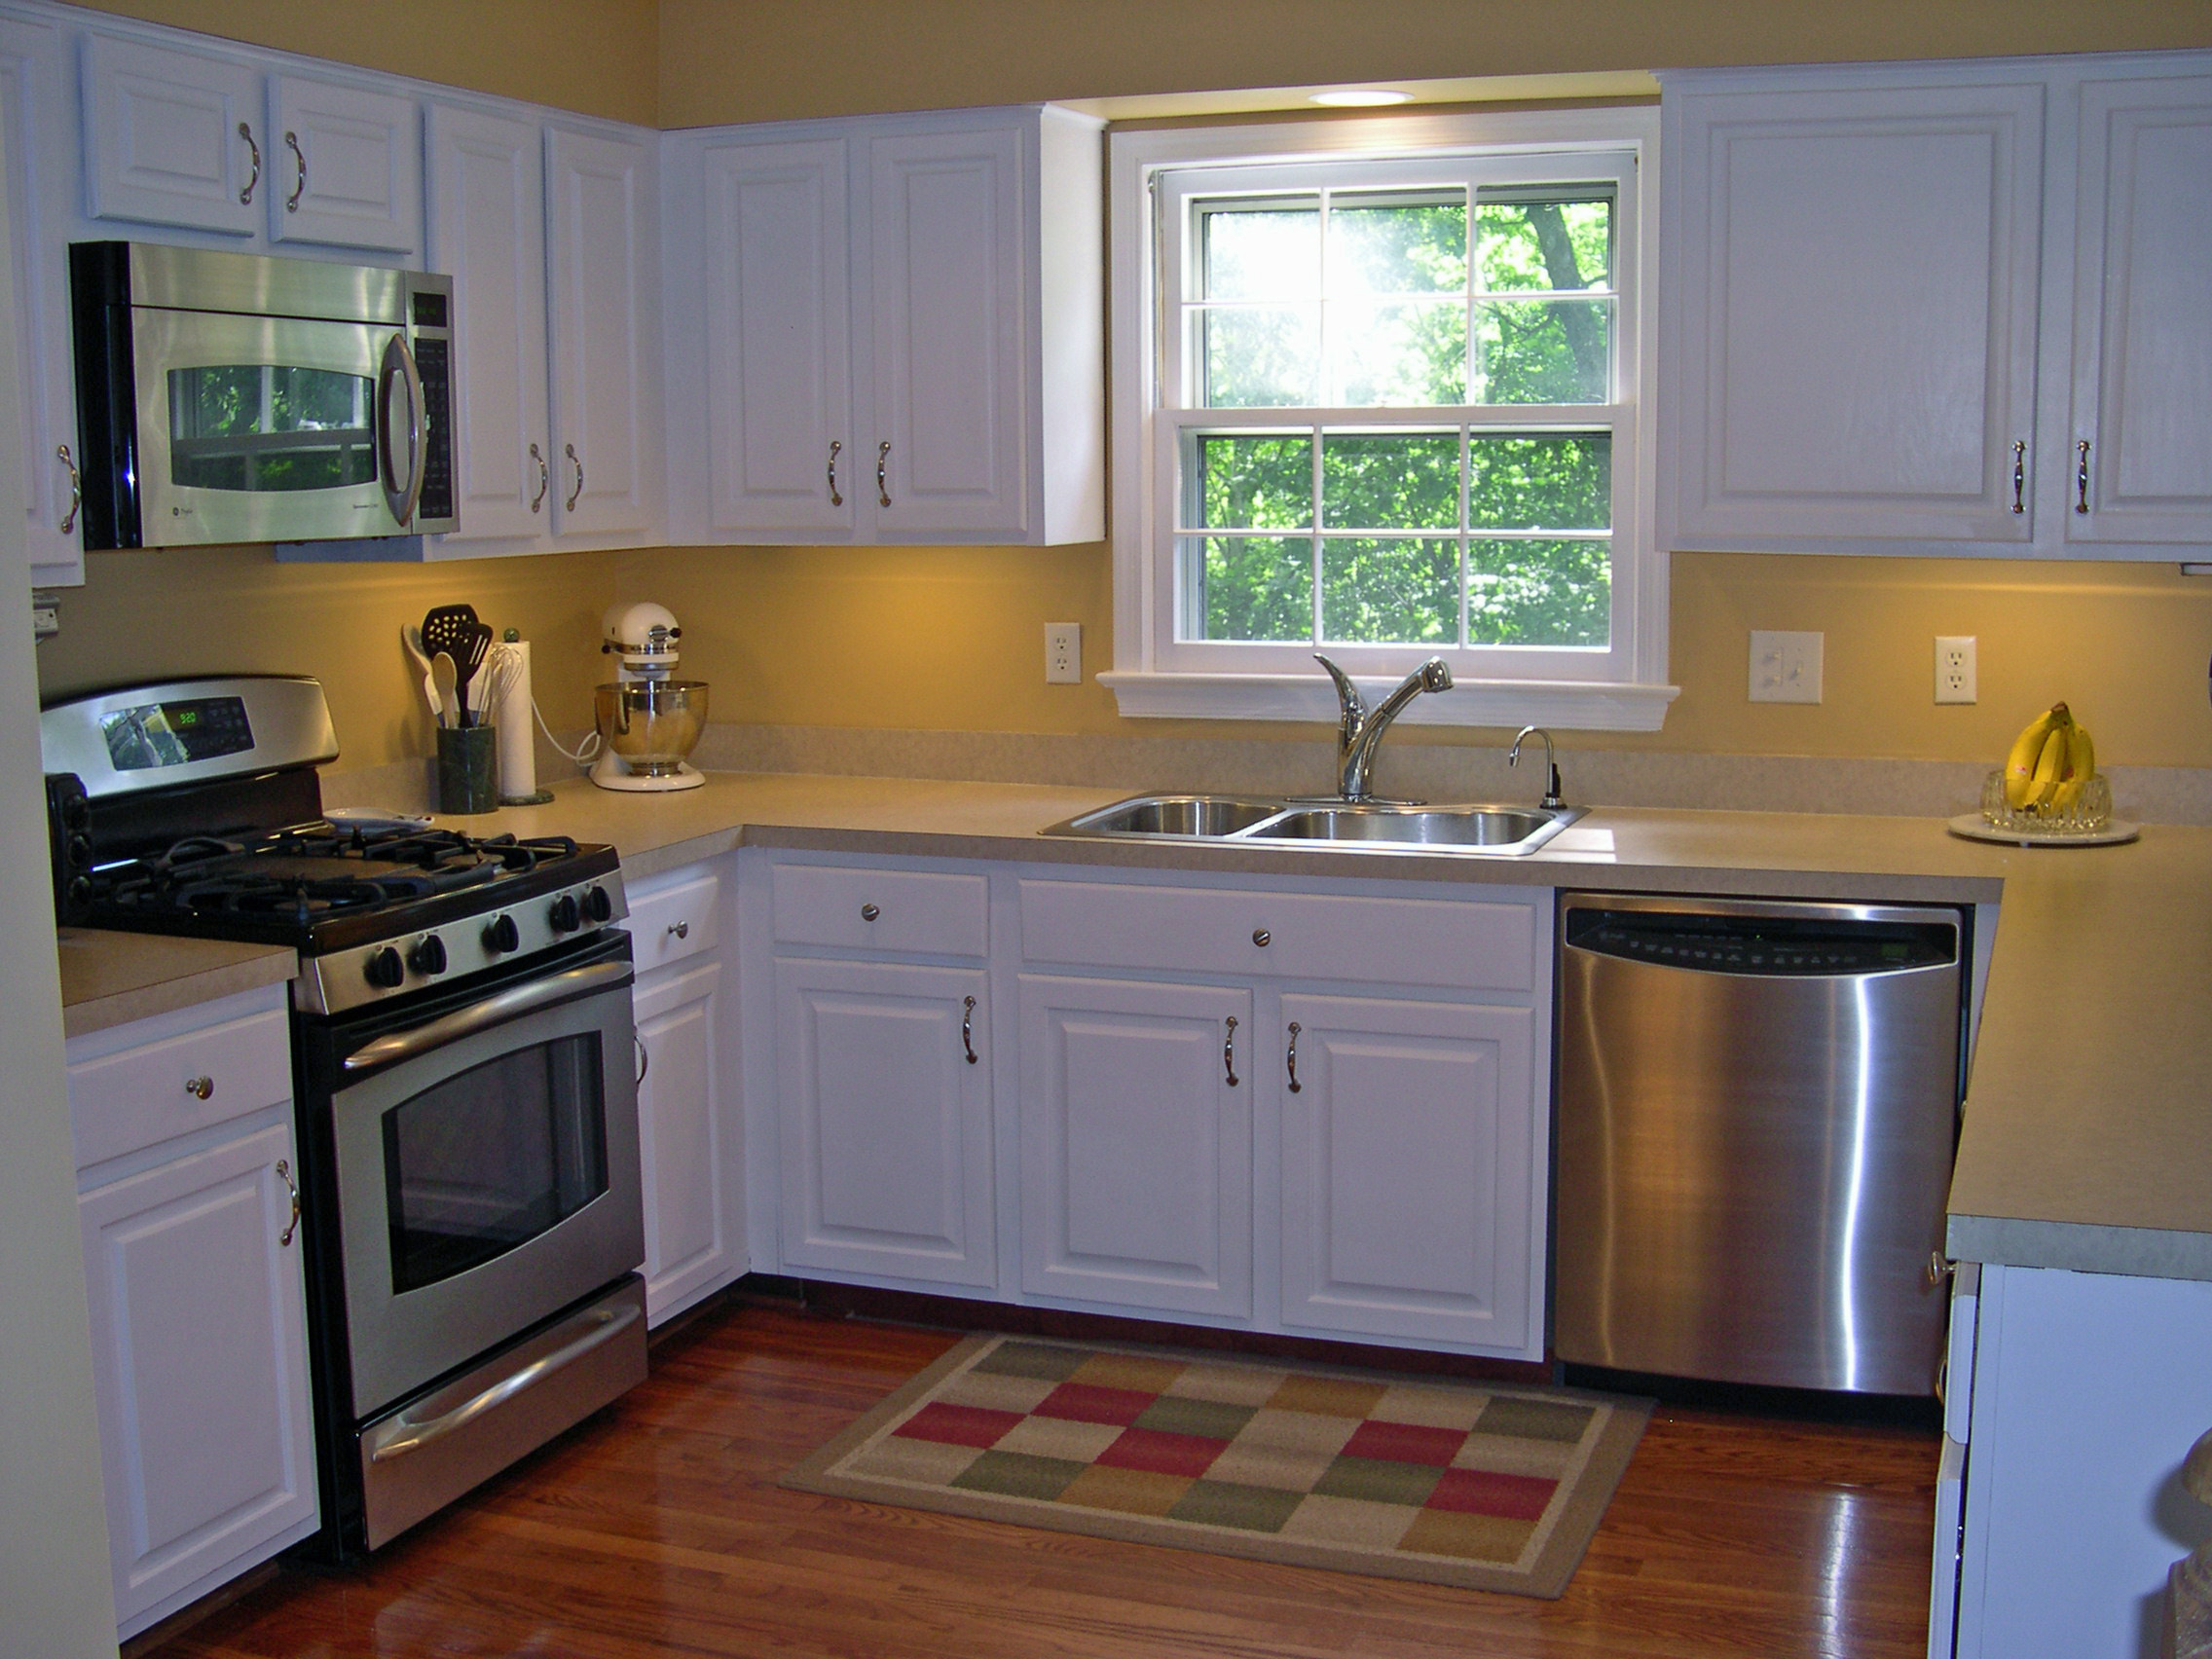 small kitchen ideas pictures photo - 2